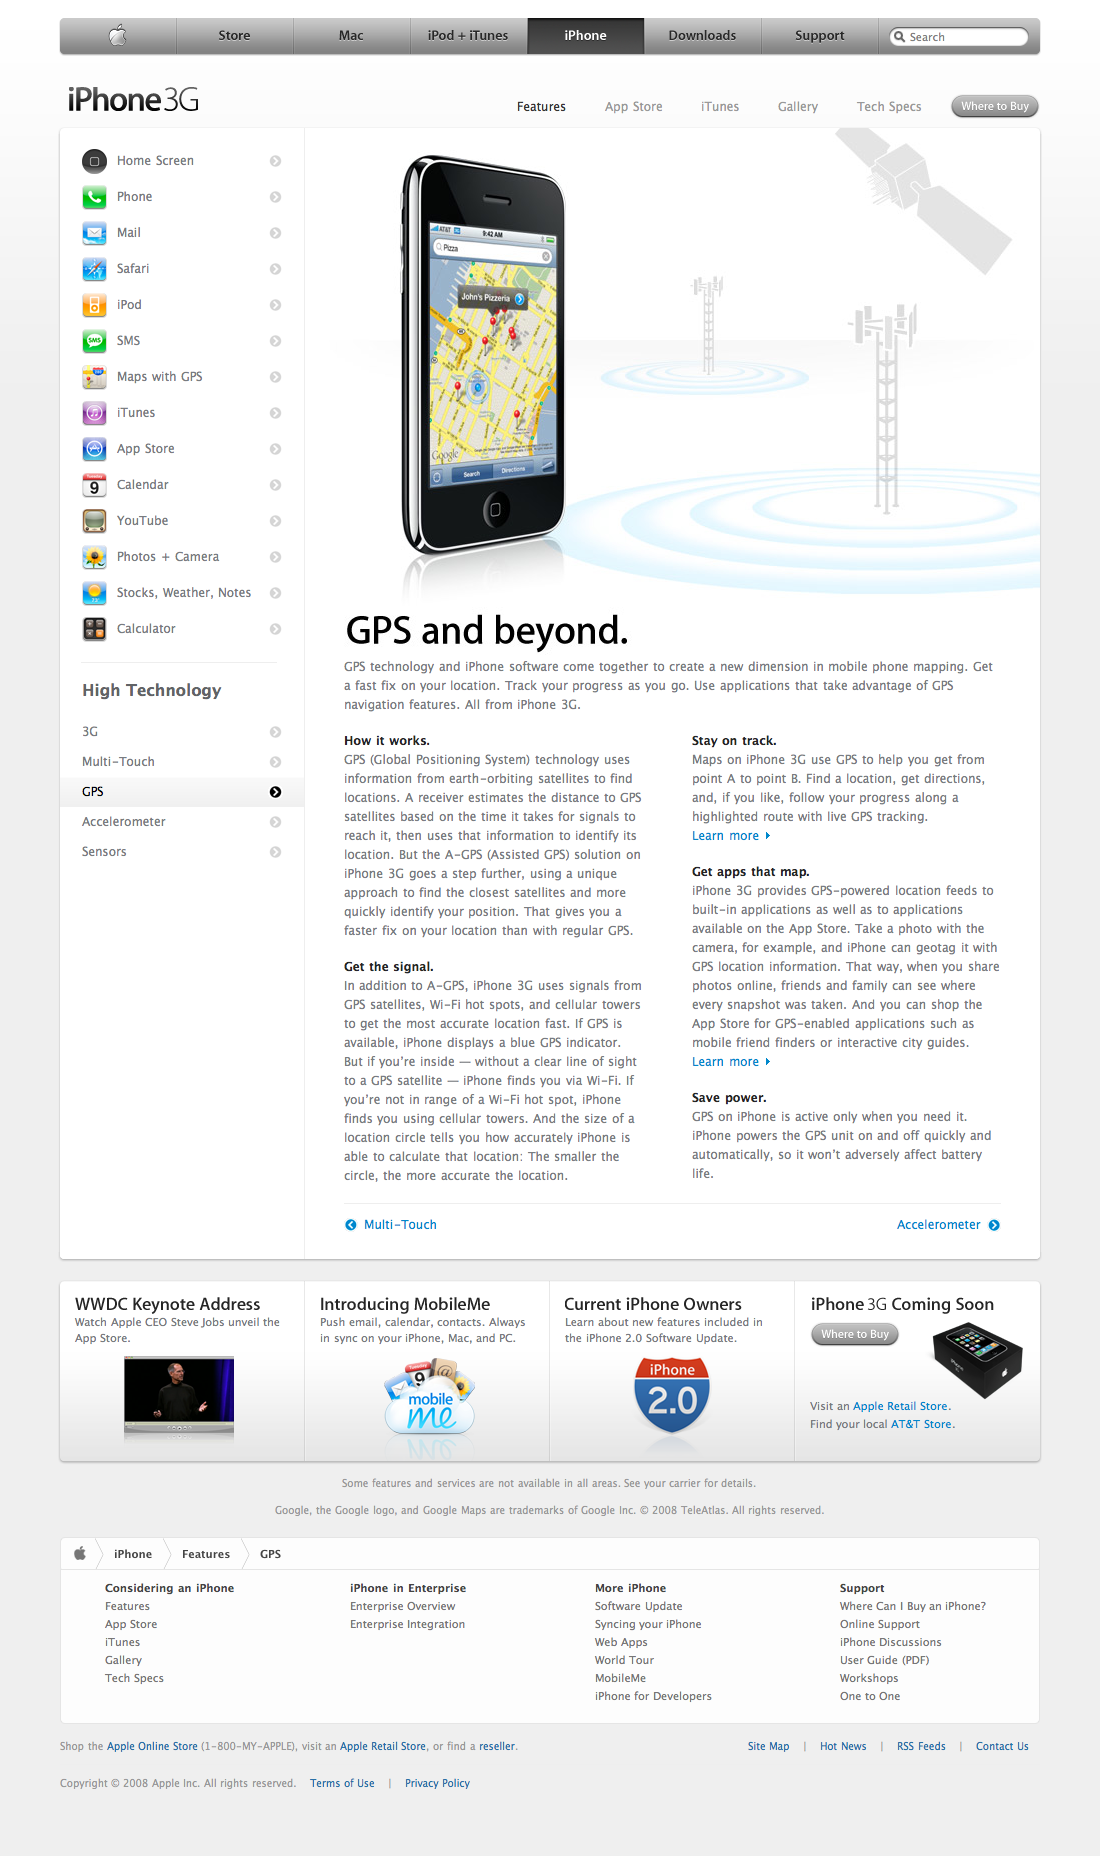 Apple - iPhone - Features - GPS (11.06.2008)